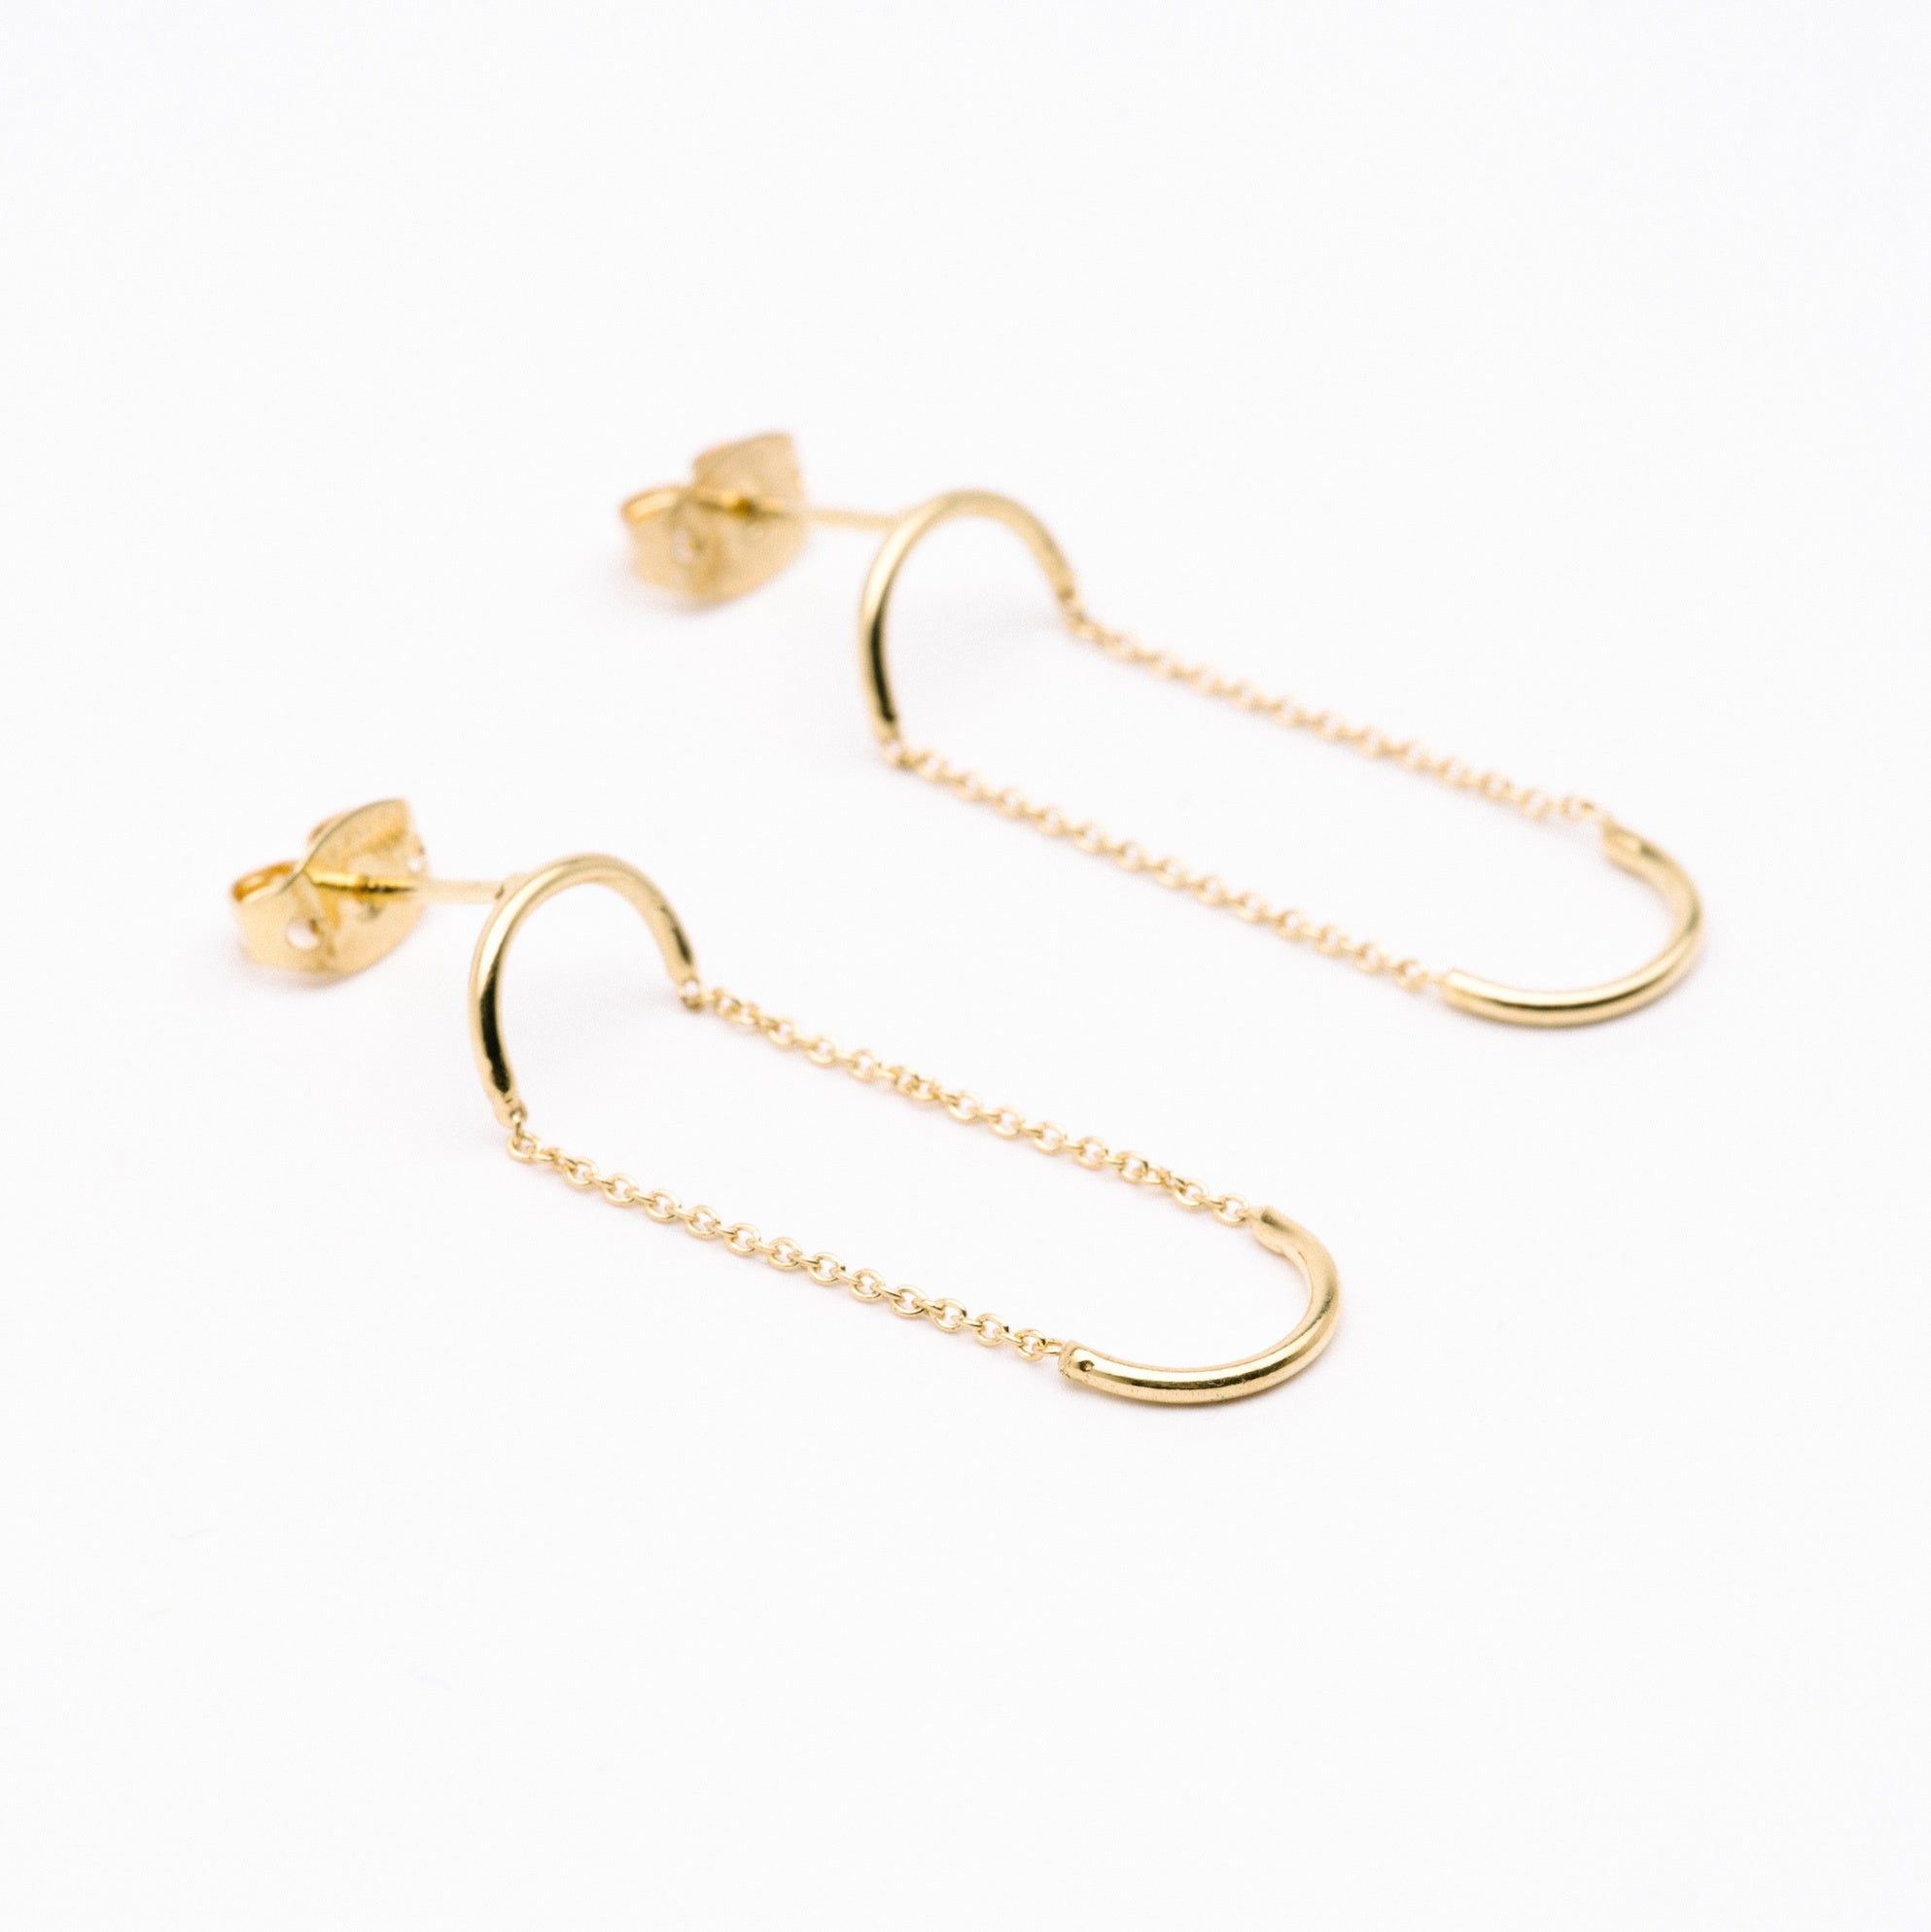 Double Unity Circle Earrings Aurore Havenne Gold plated silver bijou simple jewellery